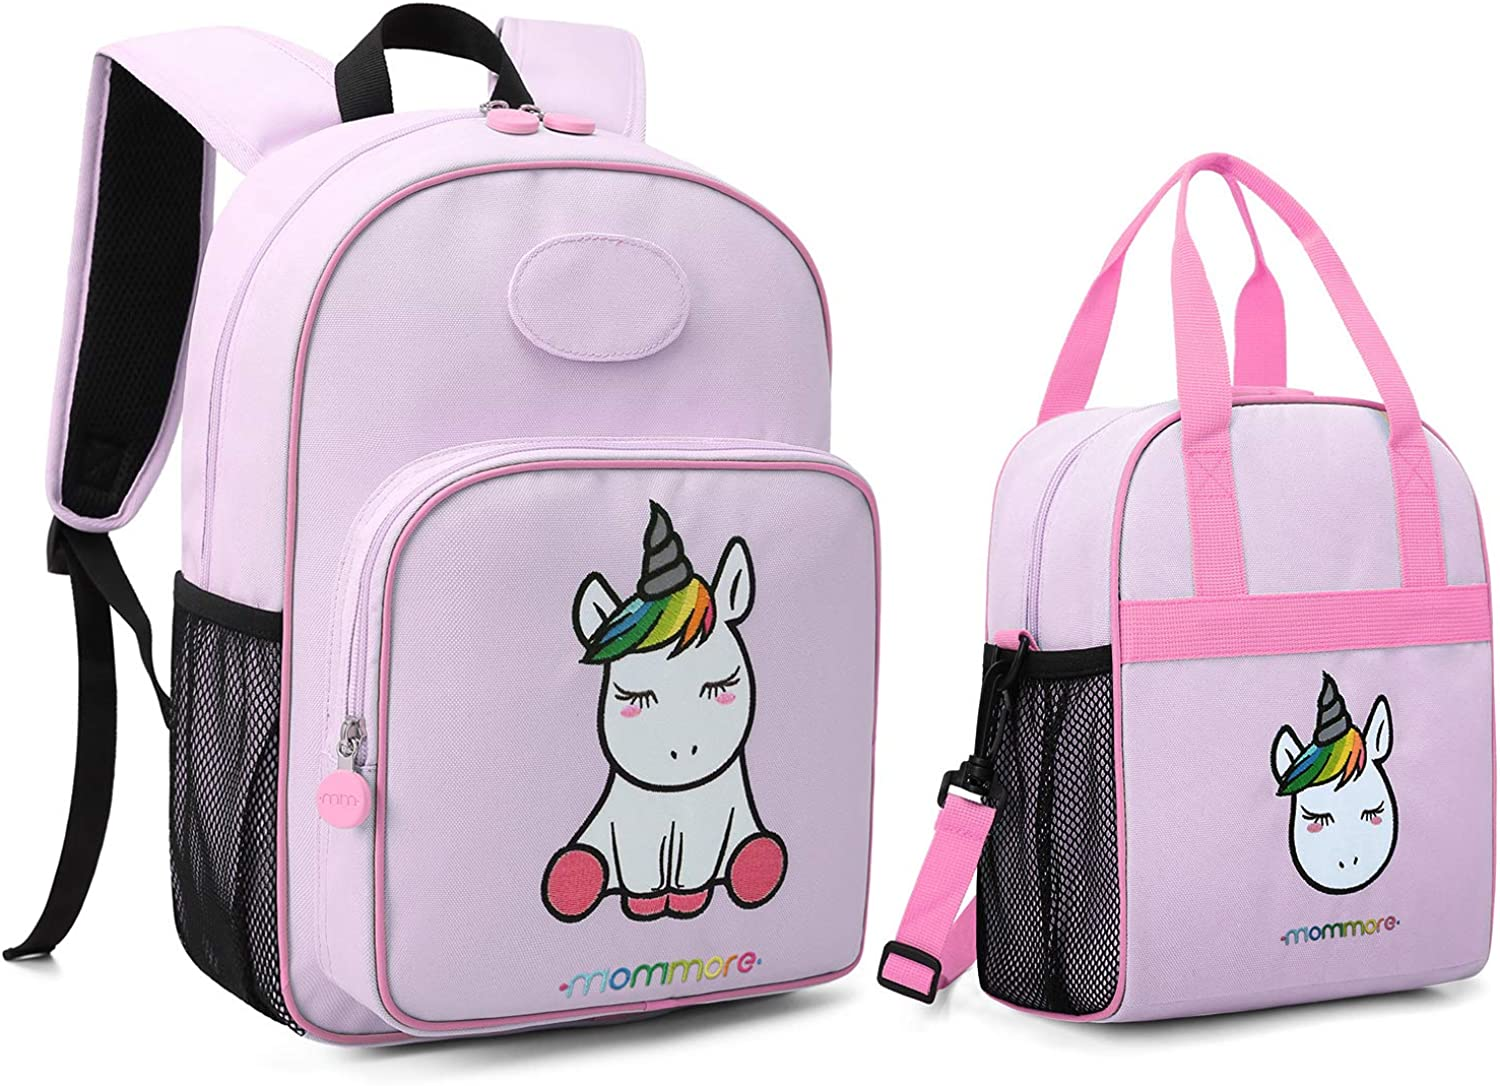 Mommore Cute Unicorn Kids Backpack with Insulated Lunch Bag for Boys Girls,Purple